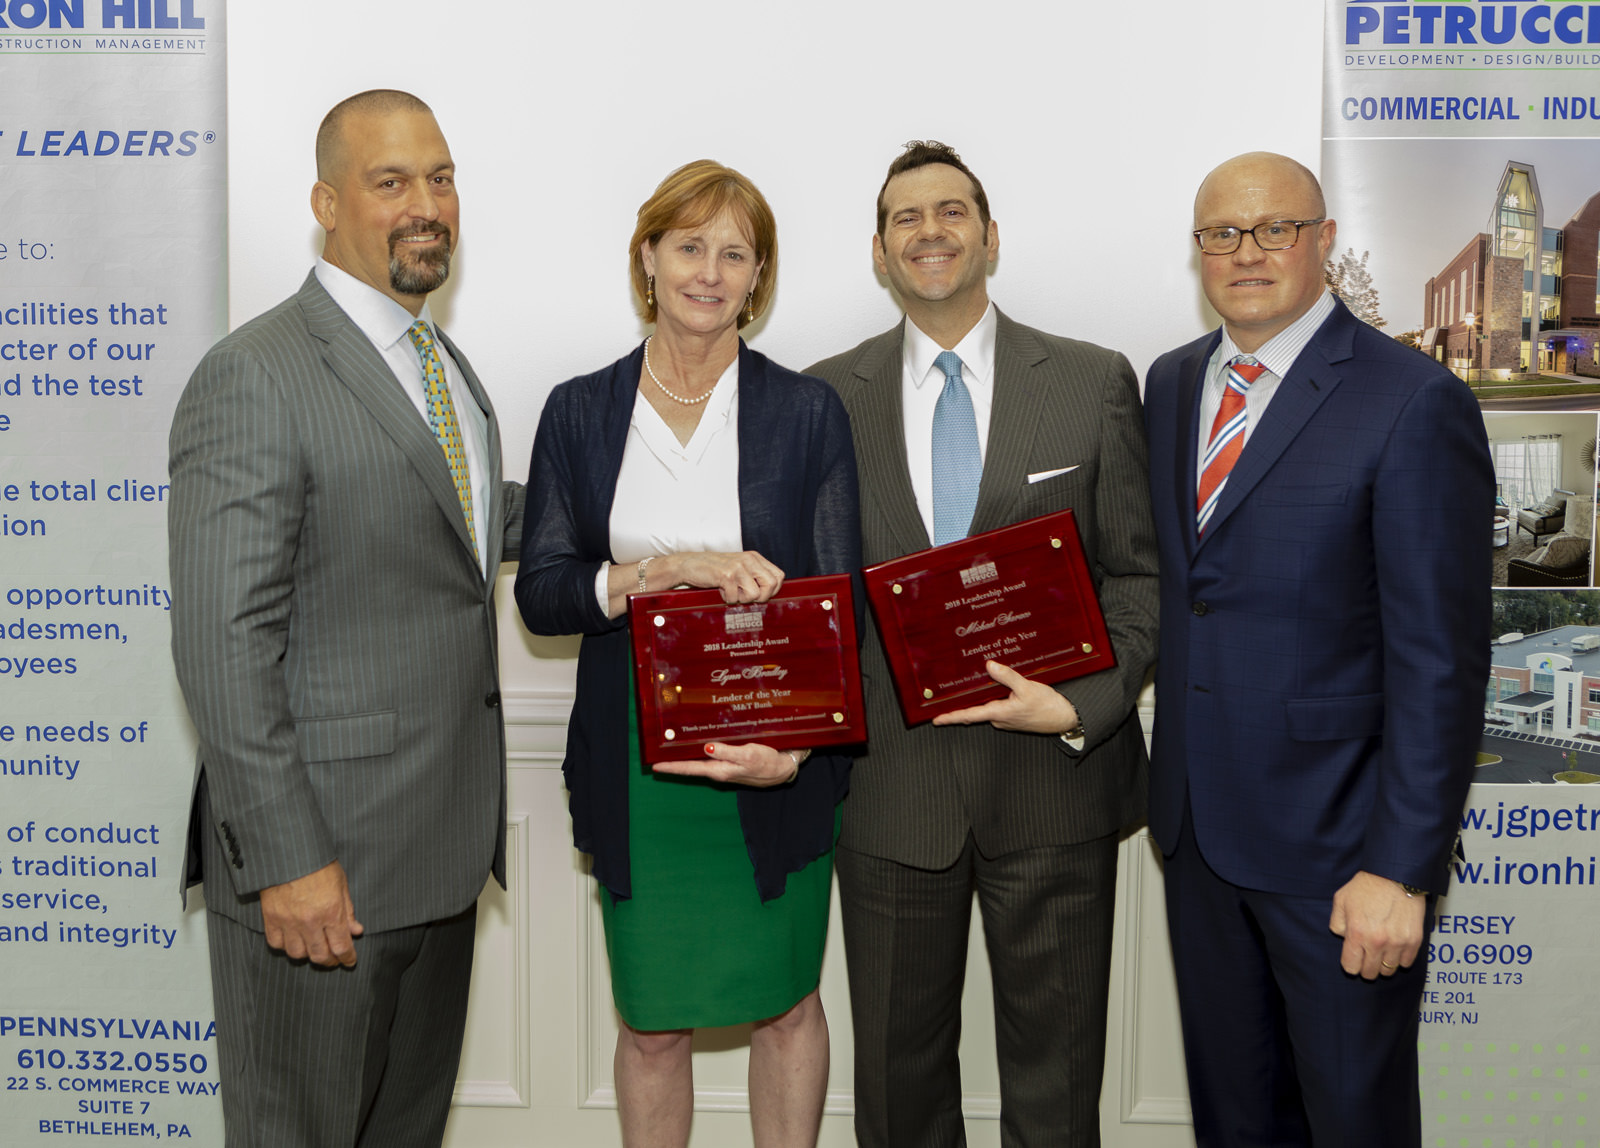 New Jersey Lender of the Year Lynn Bradley & Michael Saraco, M&T Bank Your impressive knowledge and understanding of New Market Tax Credits enabled J.G. Petrucci's project for South Second Street Youth Center to be delivered on time and on...